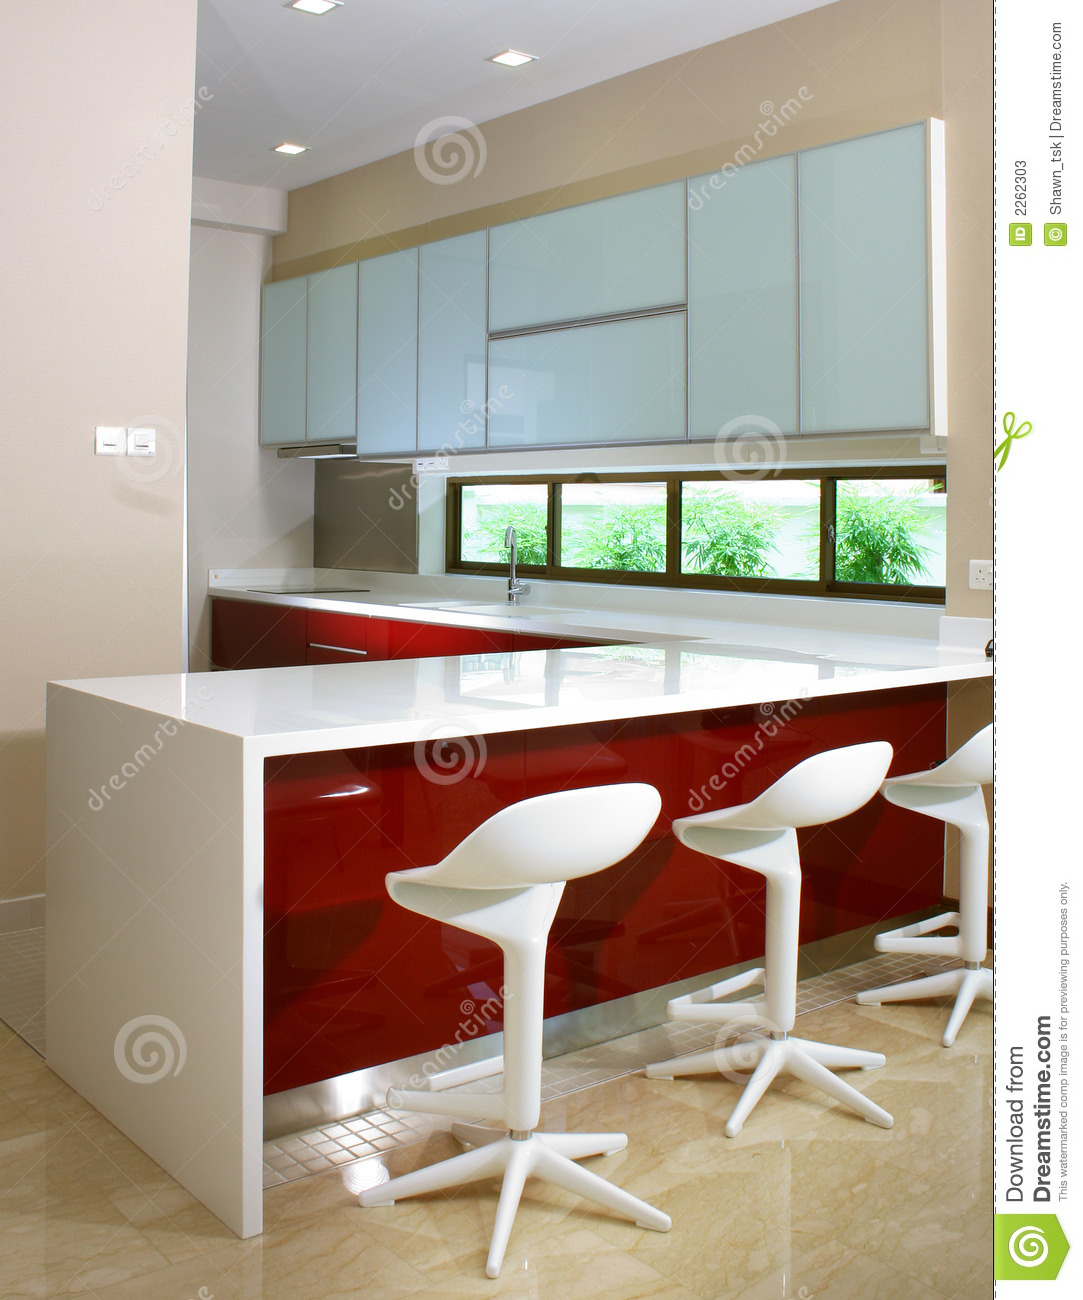 Kitchen and bar counter stock image. Image of glass, contemporary ...